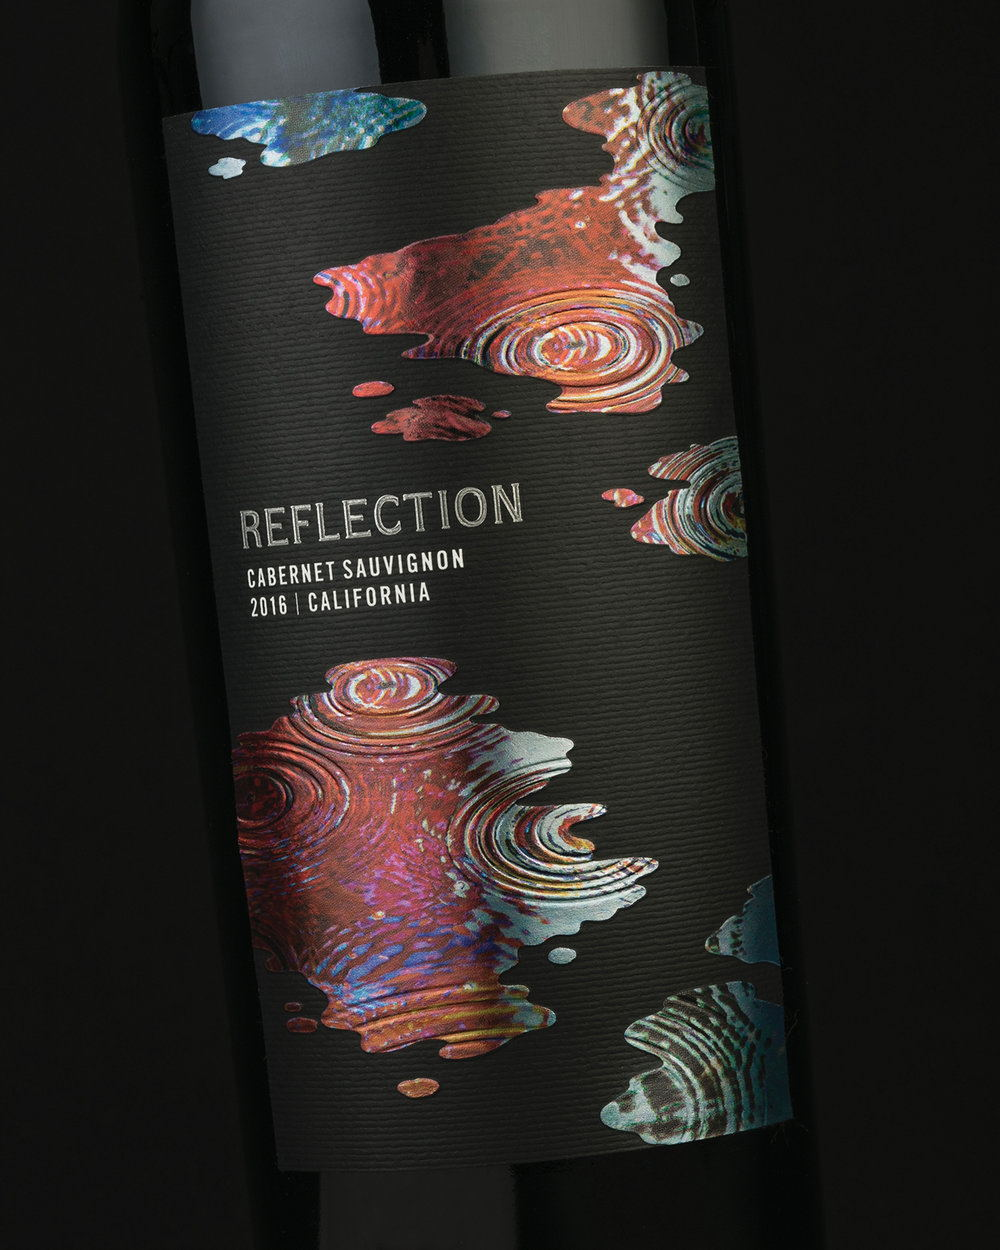 reflection_wine_black_closeup_sterling_creativeworks.jpg